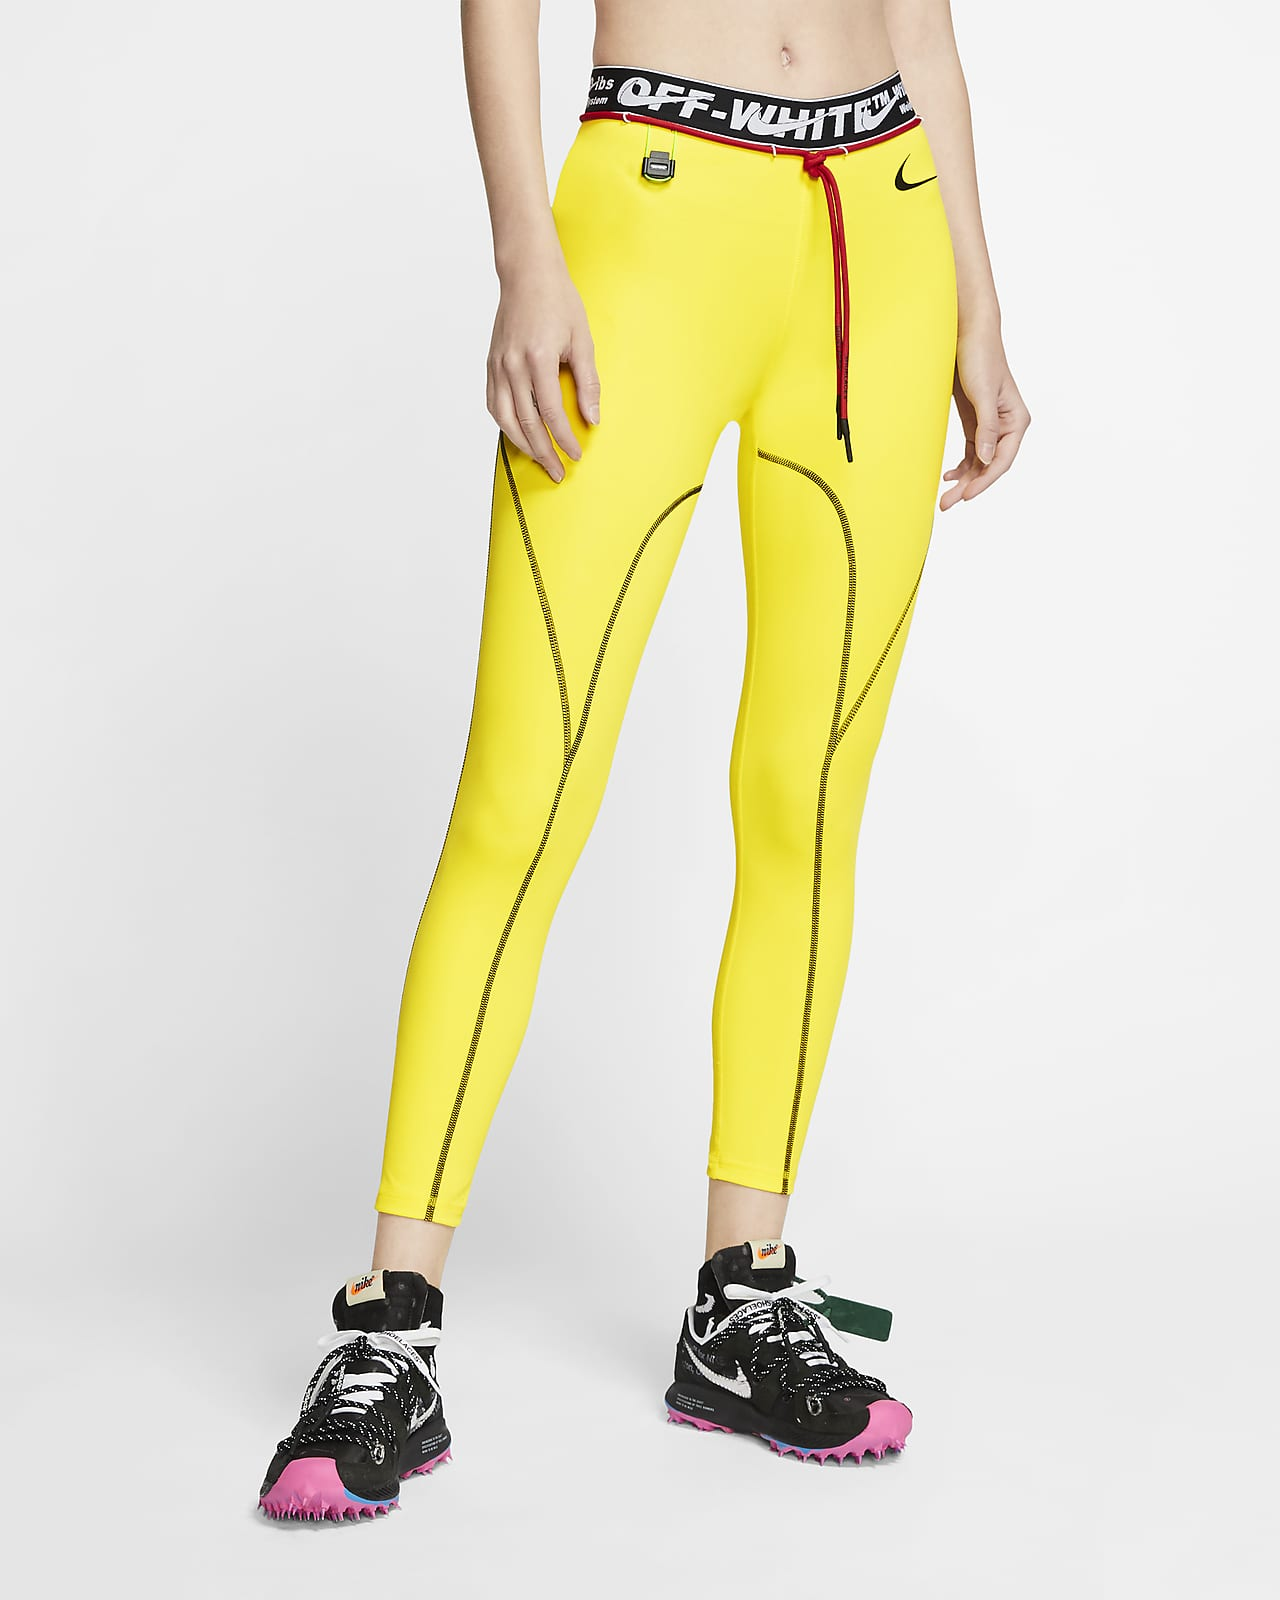 Off-White™ Pro Women's Tights. Nike ID